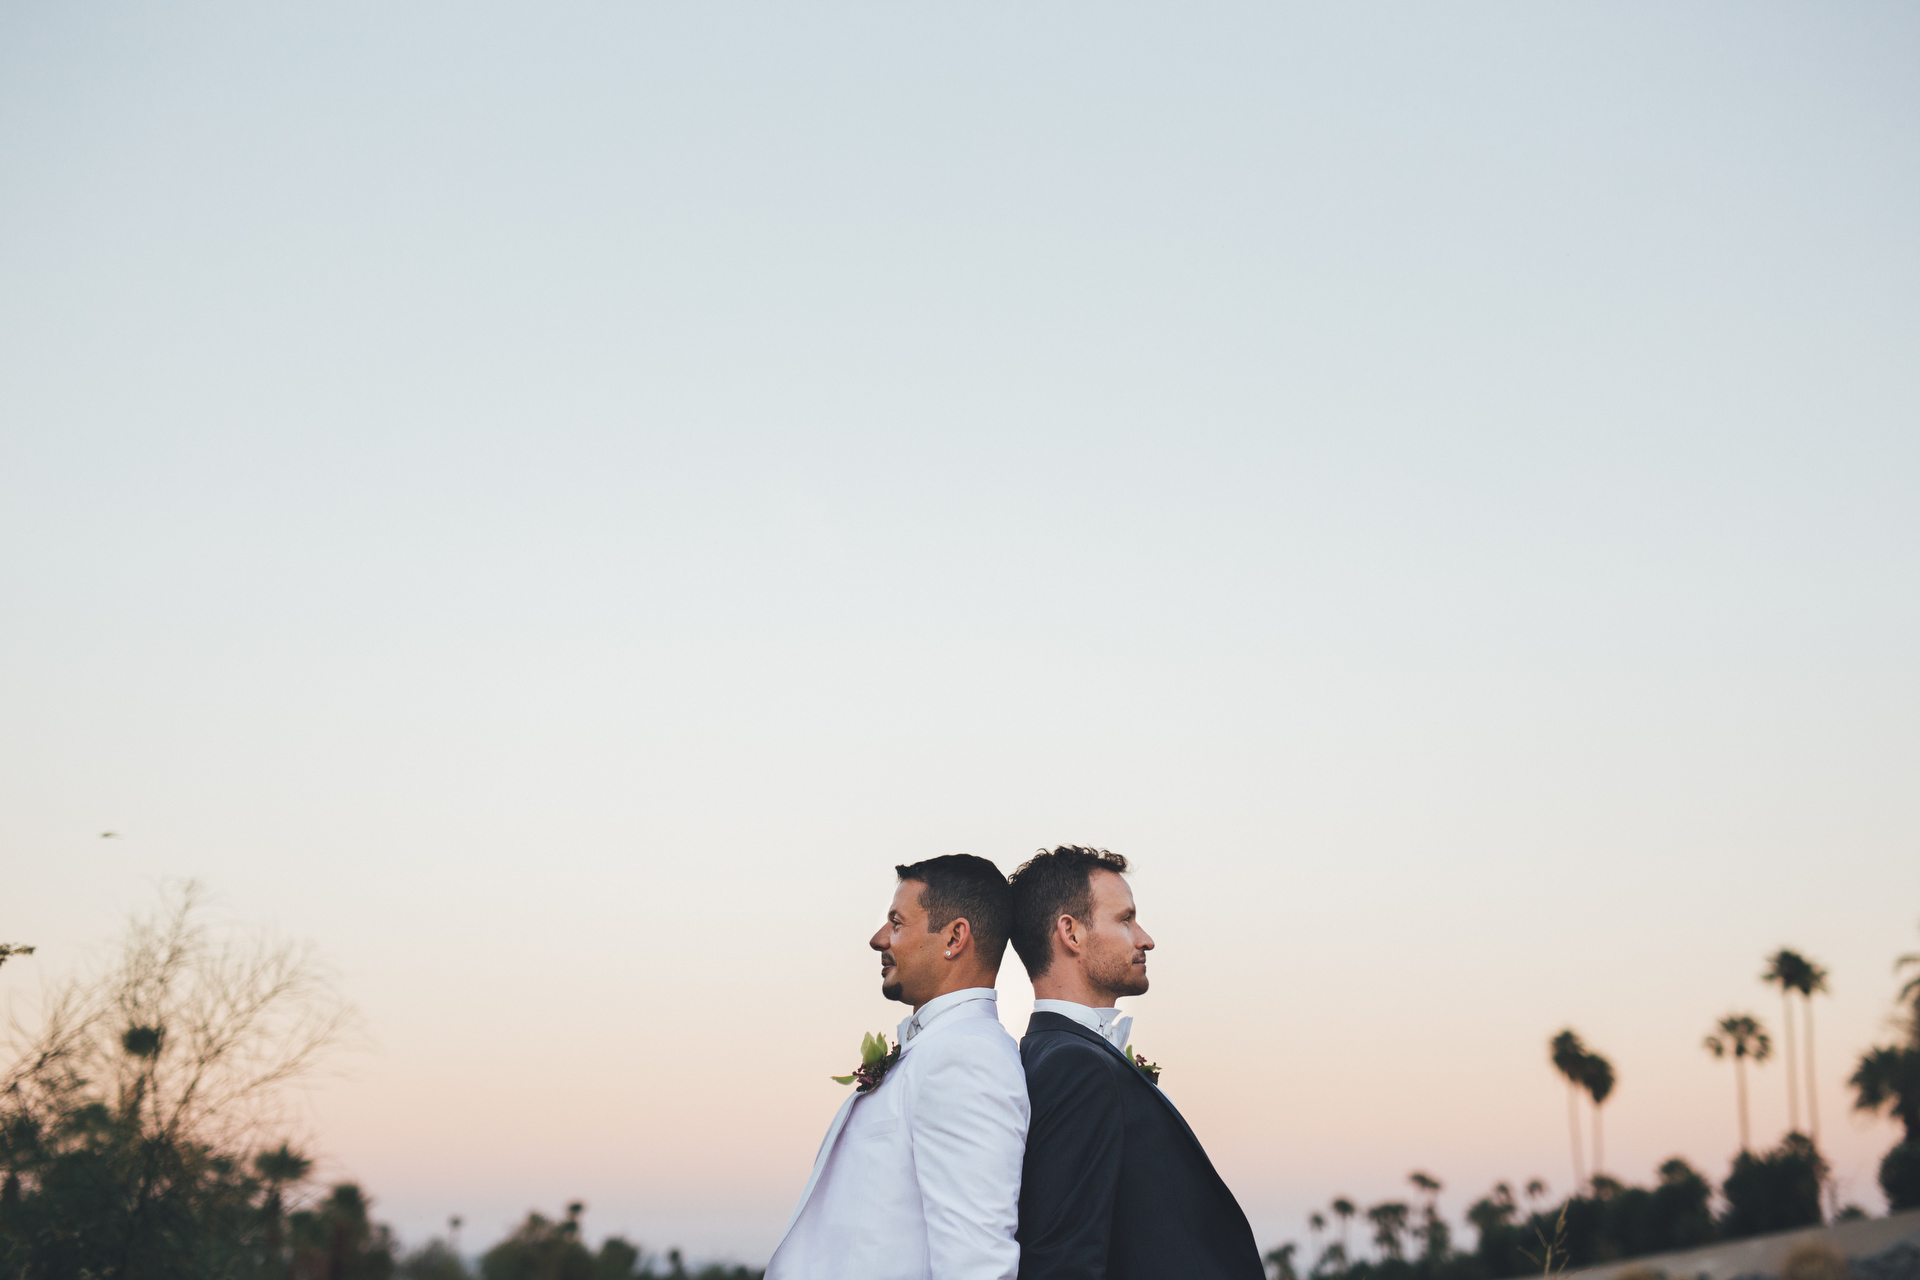 same sex wedding, palm springs, wedding photography palm springs